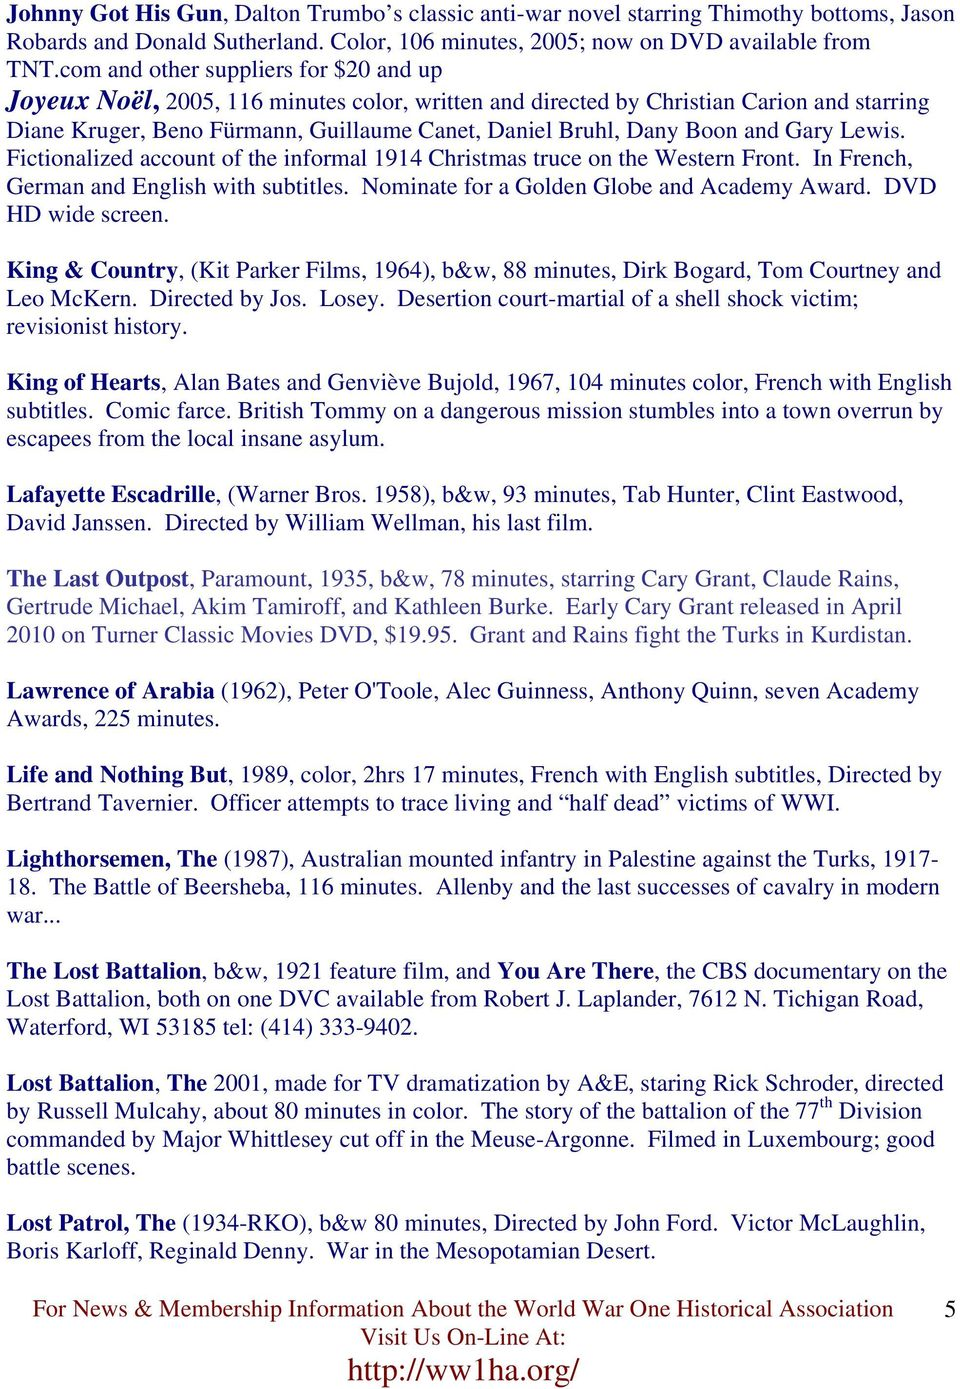 World War One Films And Videos Pdf